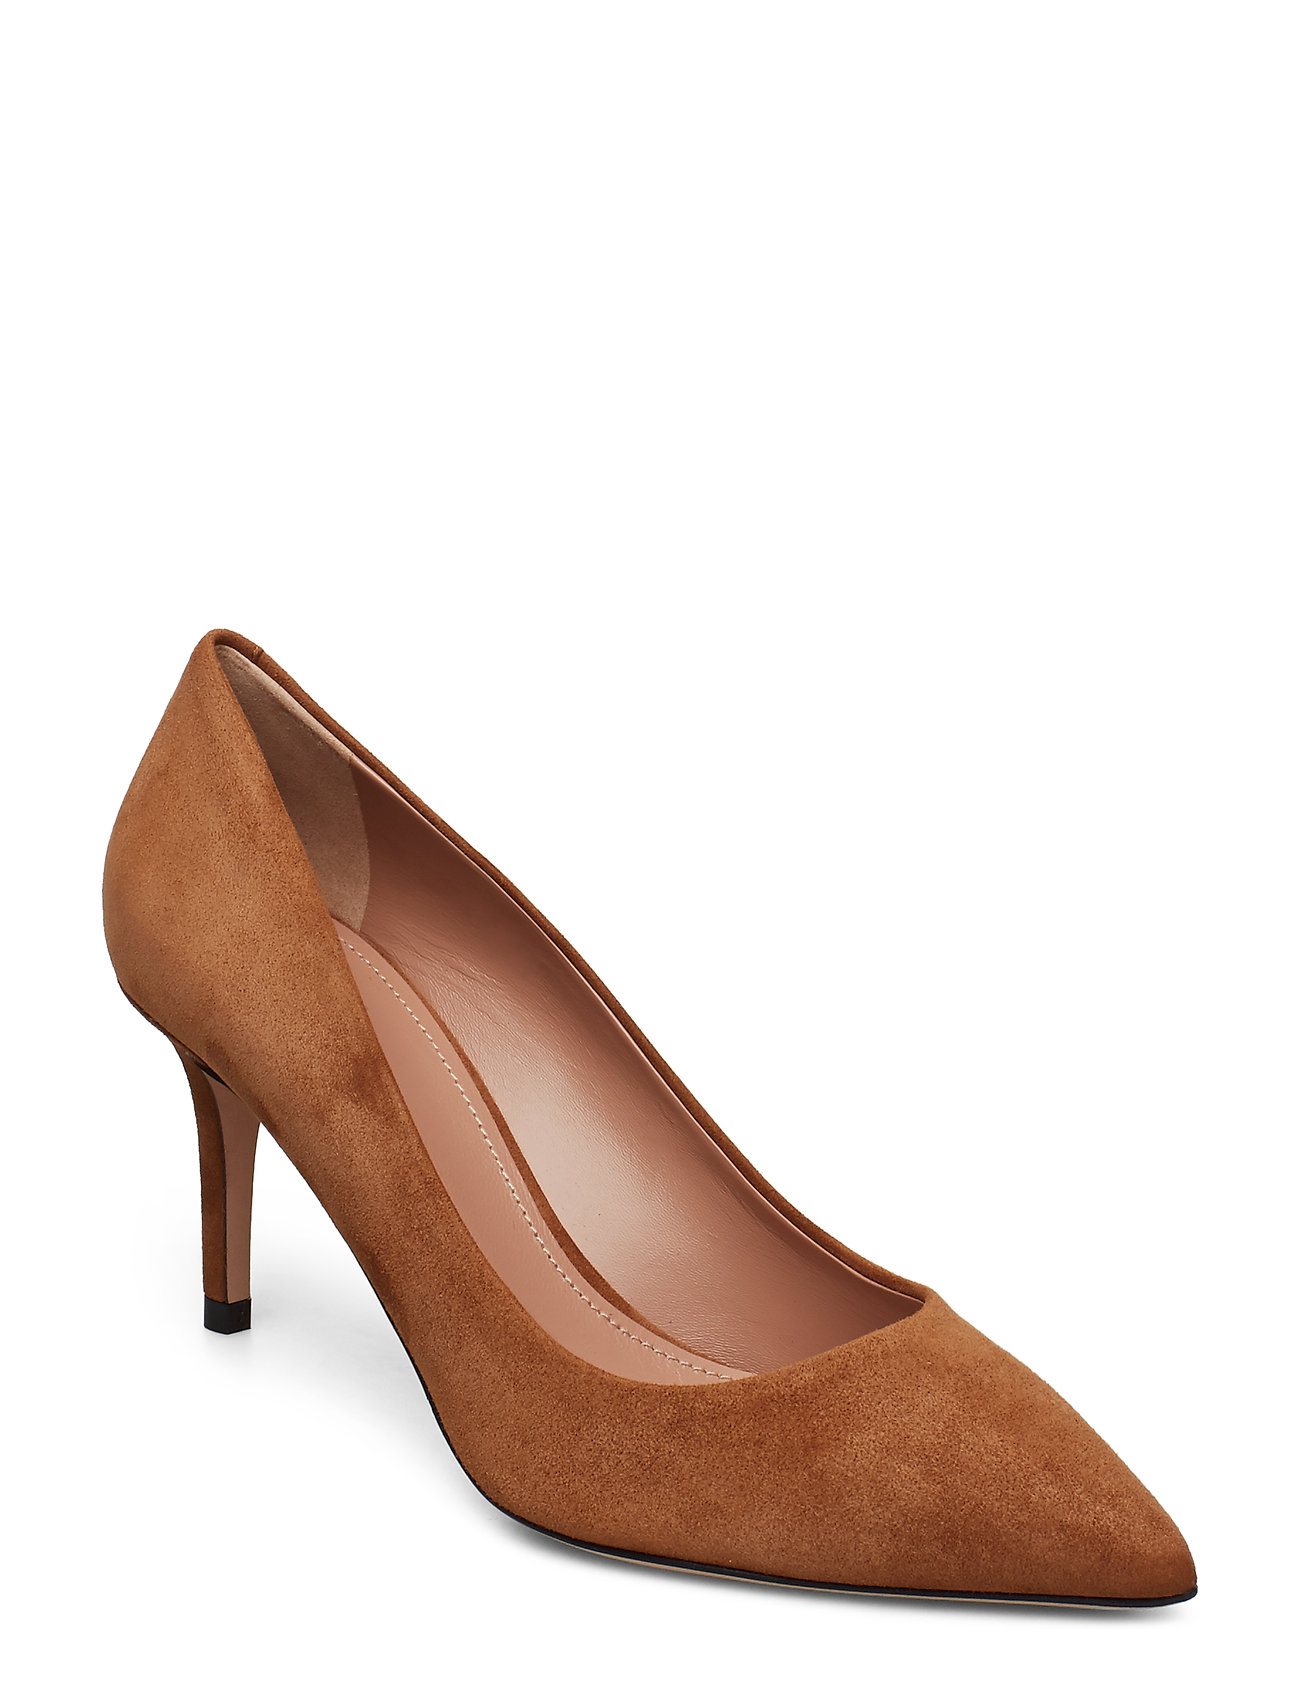 BOSS Business Wear Eddie Pump 70-S - LIGHT/PASTEL BROWN